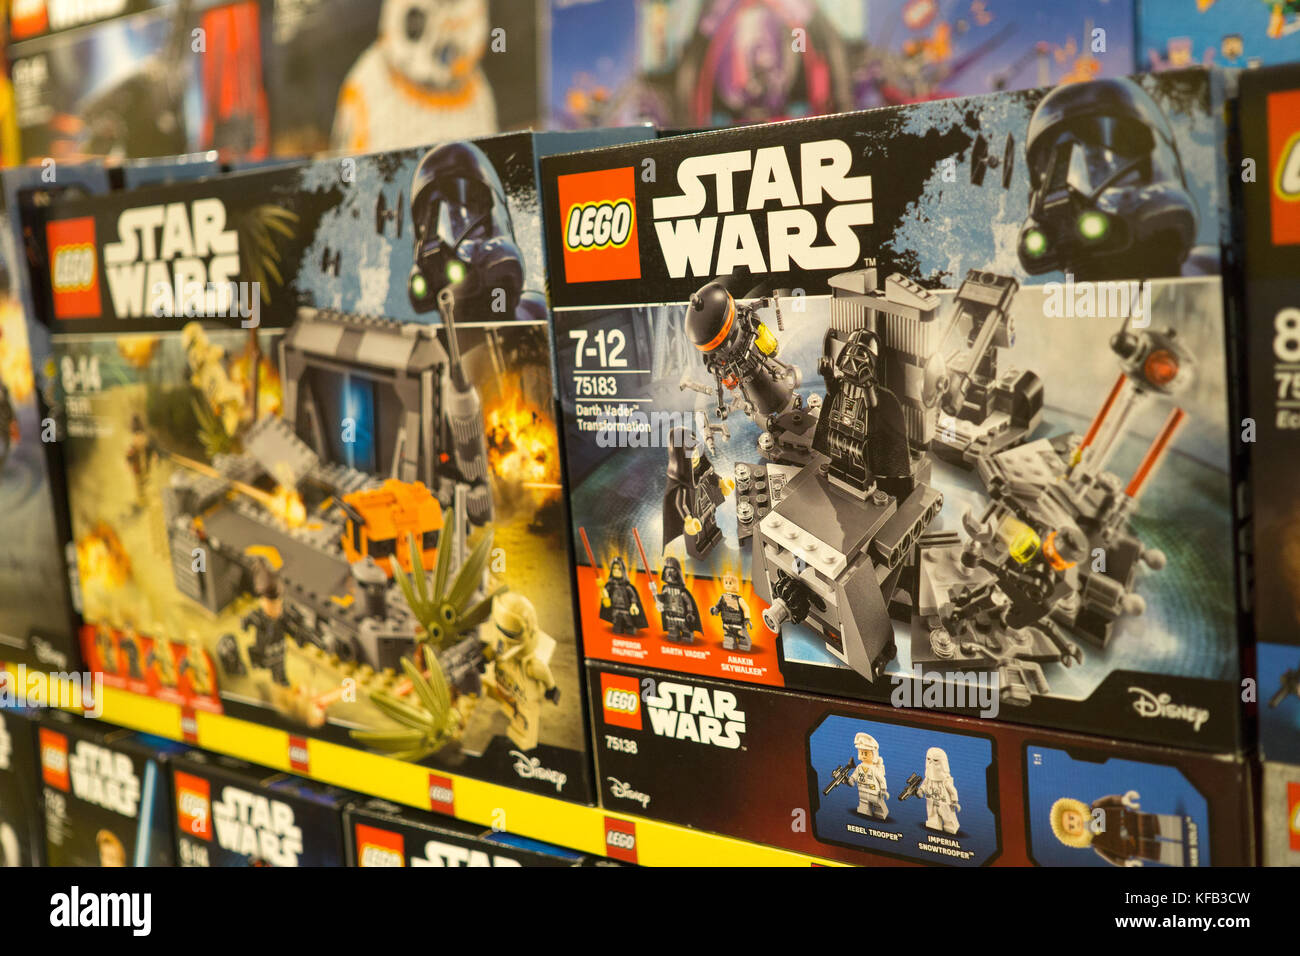 Star Wars Toys on sale within a Toys 'R' Us store,Cebu City,Philippines - Stock Image